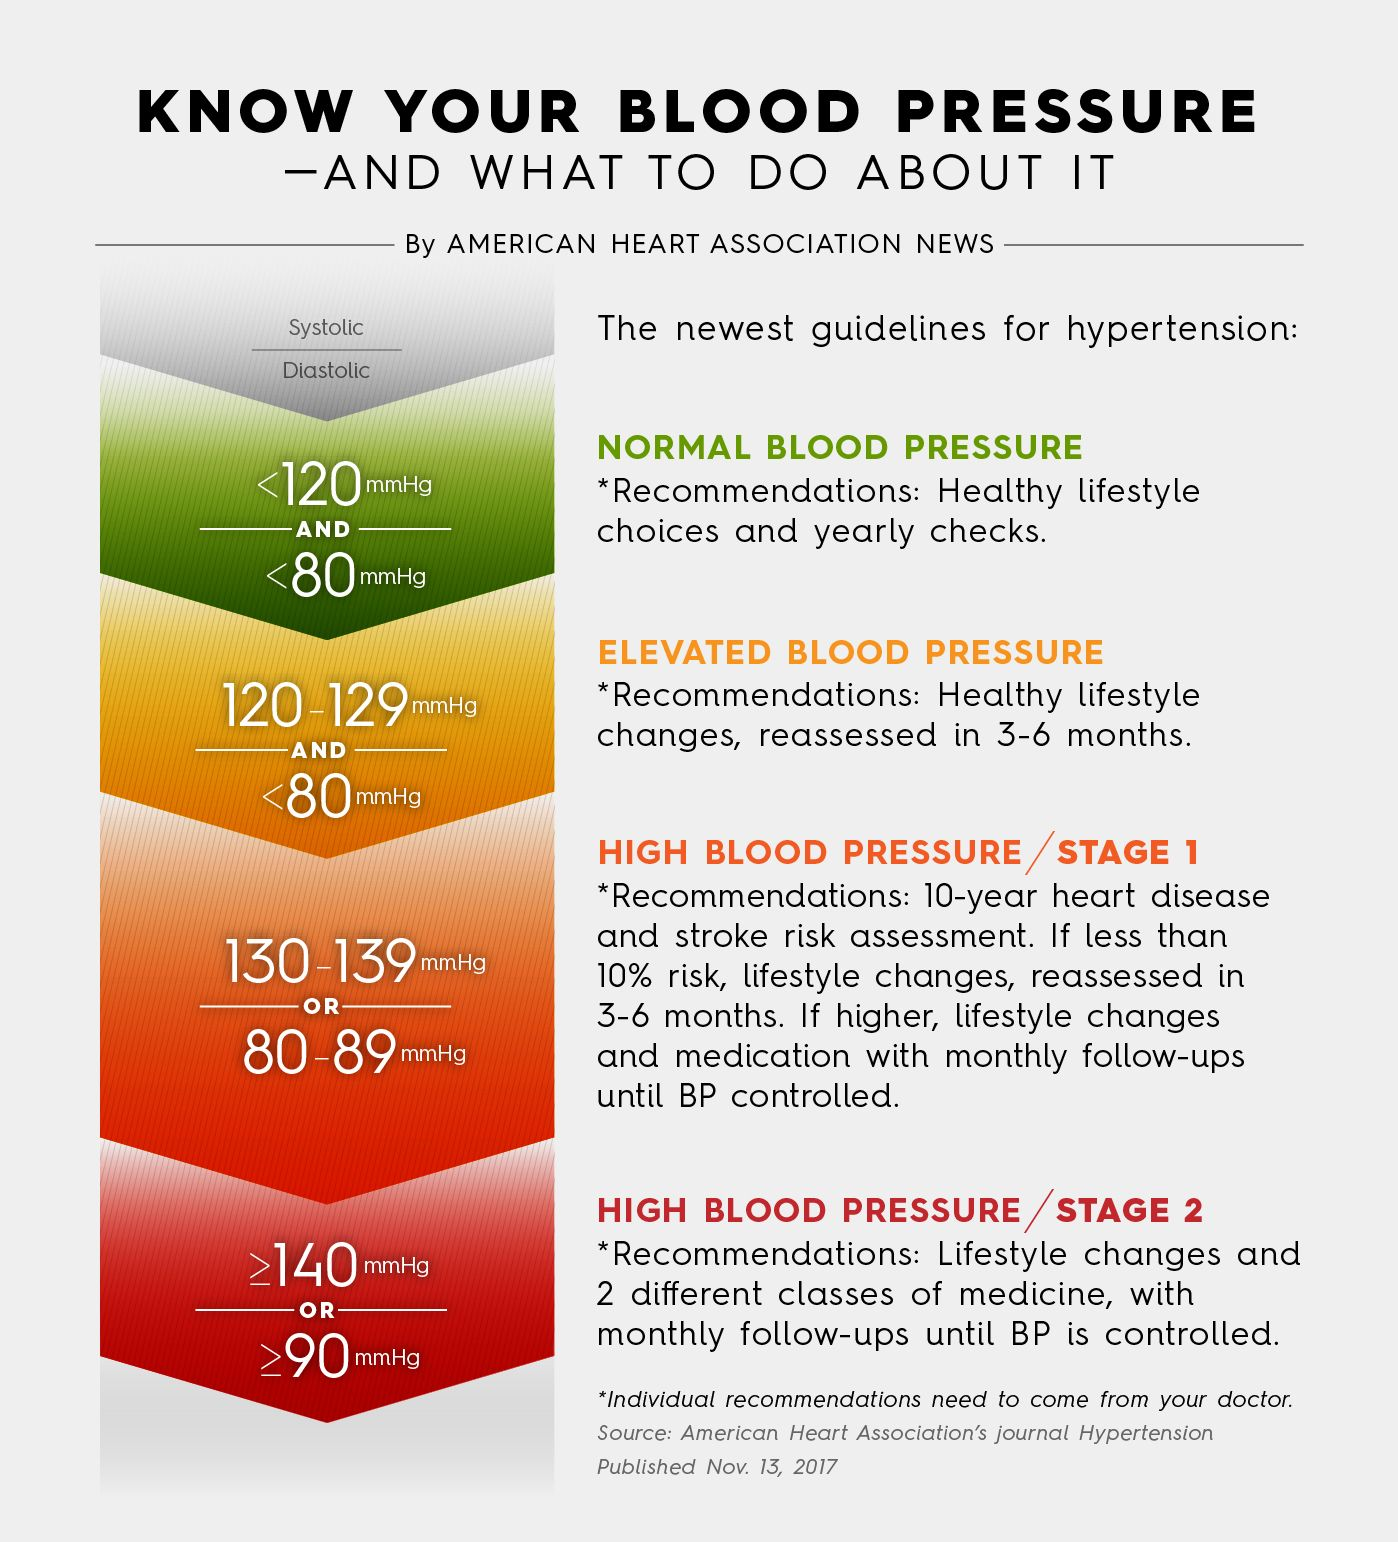 High blood pressure is redefined as 130, not 140 - USA guidelines